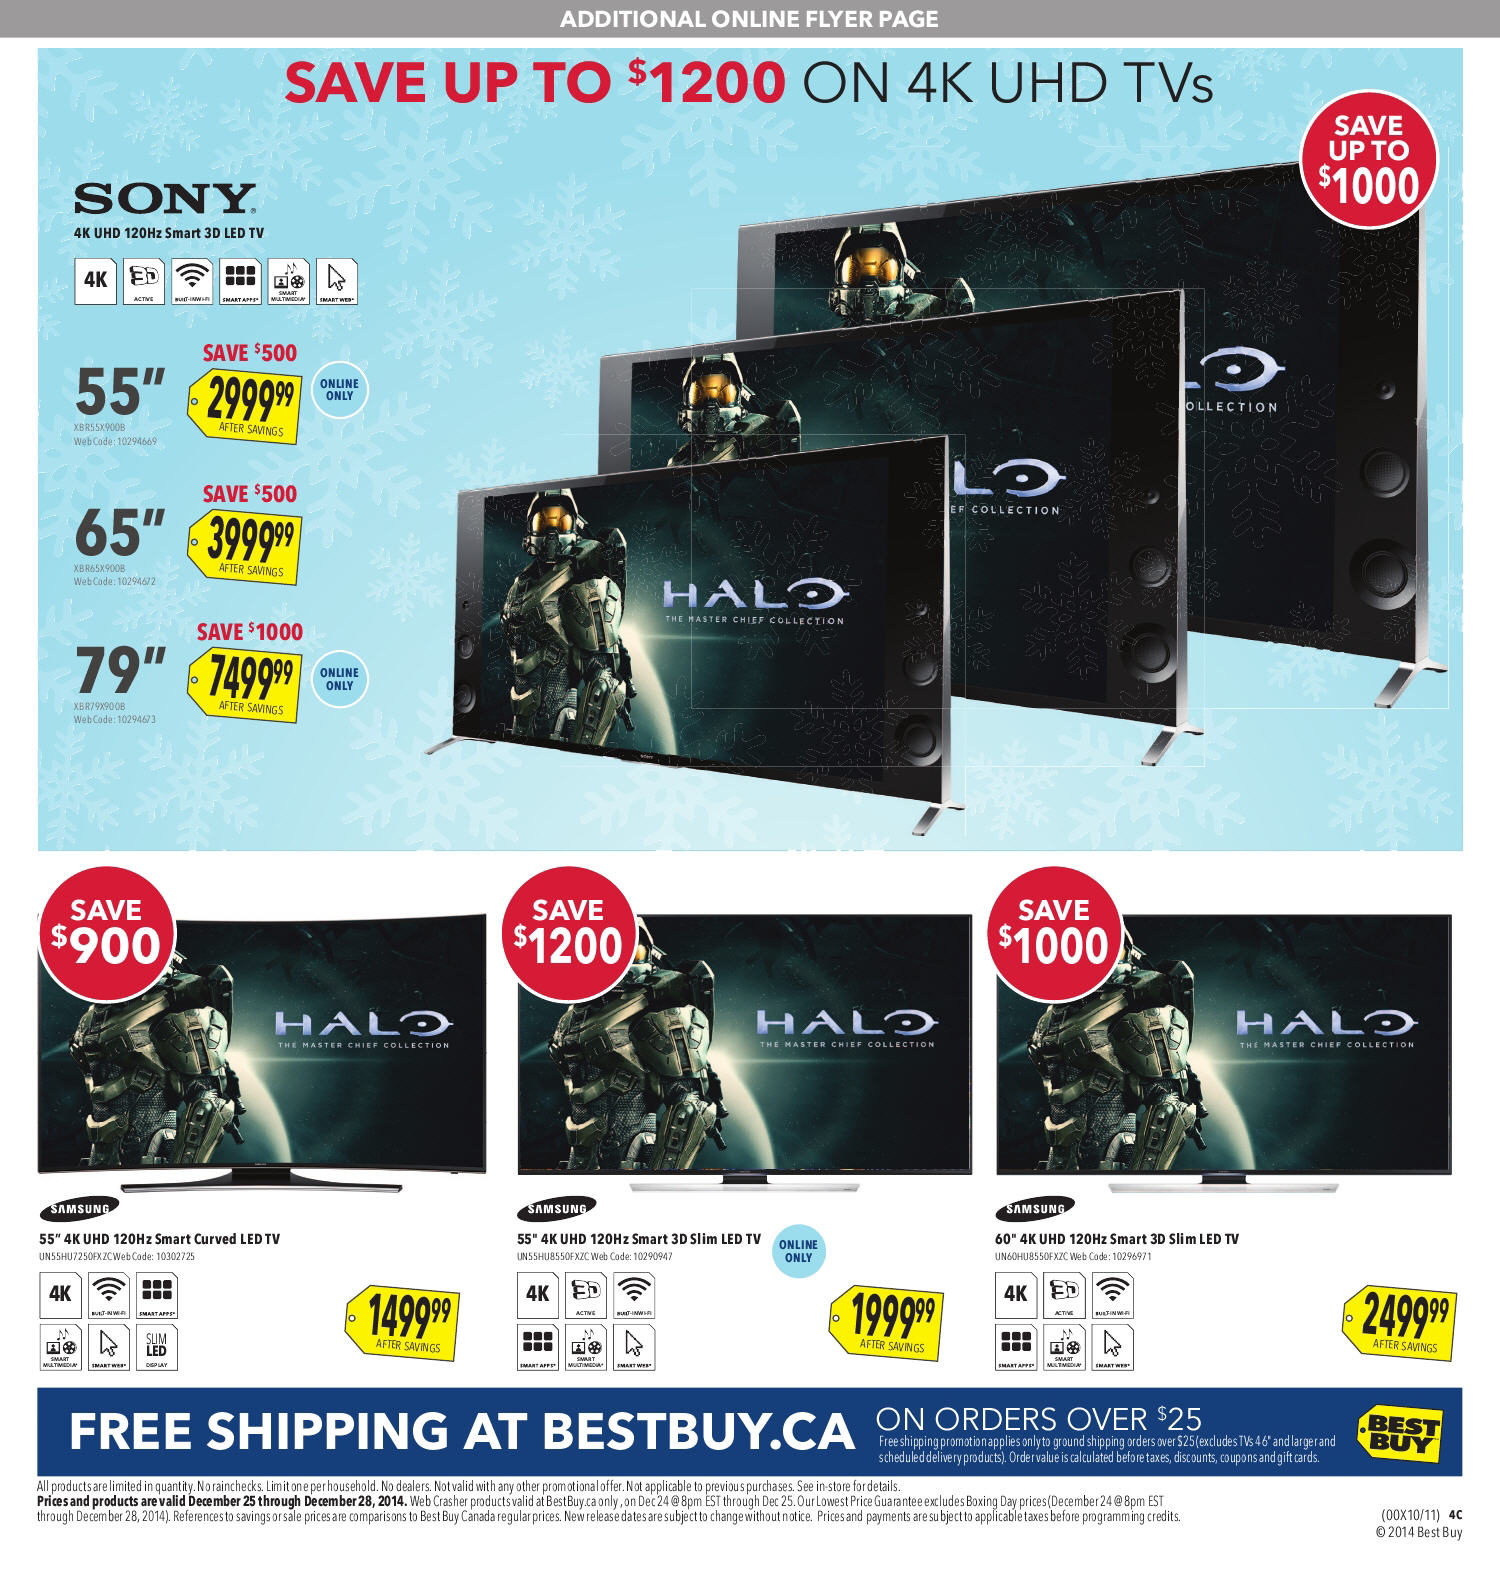 tv on sale at best buy. best buy weekly flyer - boxing day sale dec 24 \u2013 28 redflagdeals.com tv on at